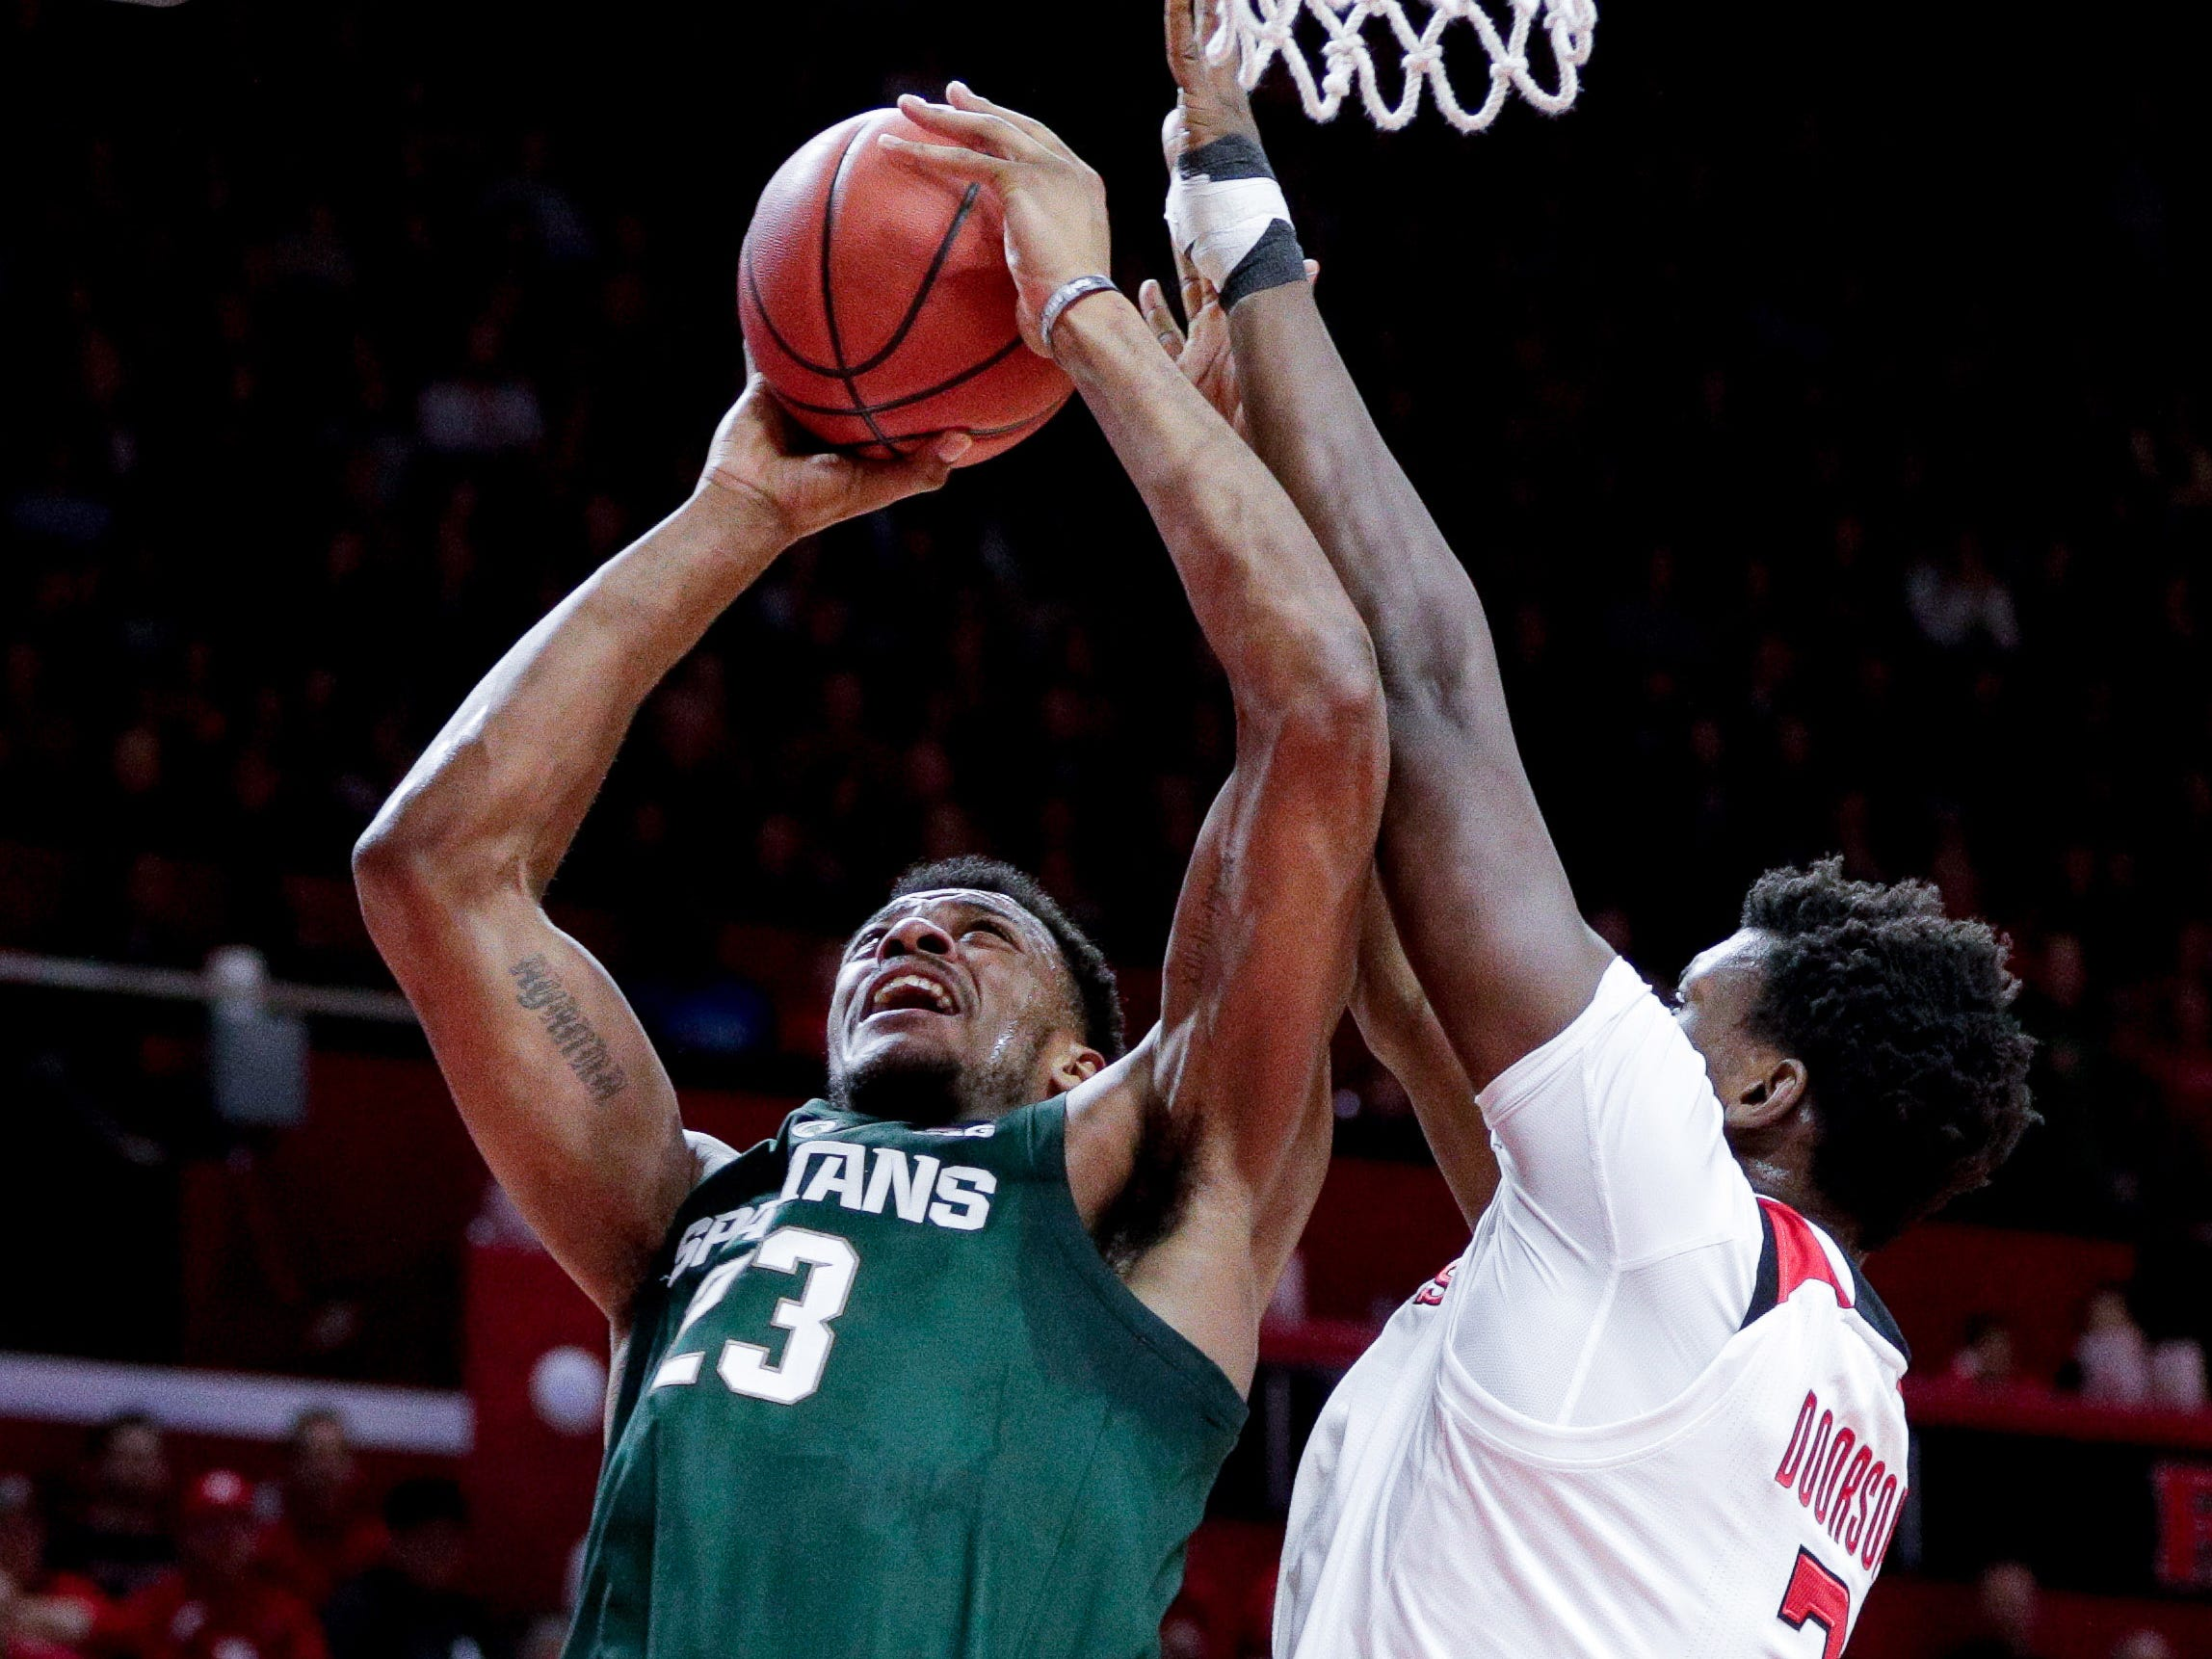 Michigan State Spartans forward Xavier Tillman (23) shoots the ball as Rutgers Scarlet Knights center Shaquille Doorson (2) defends during the first half at Rutgers Athletic Center (RAC).